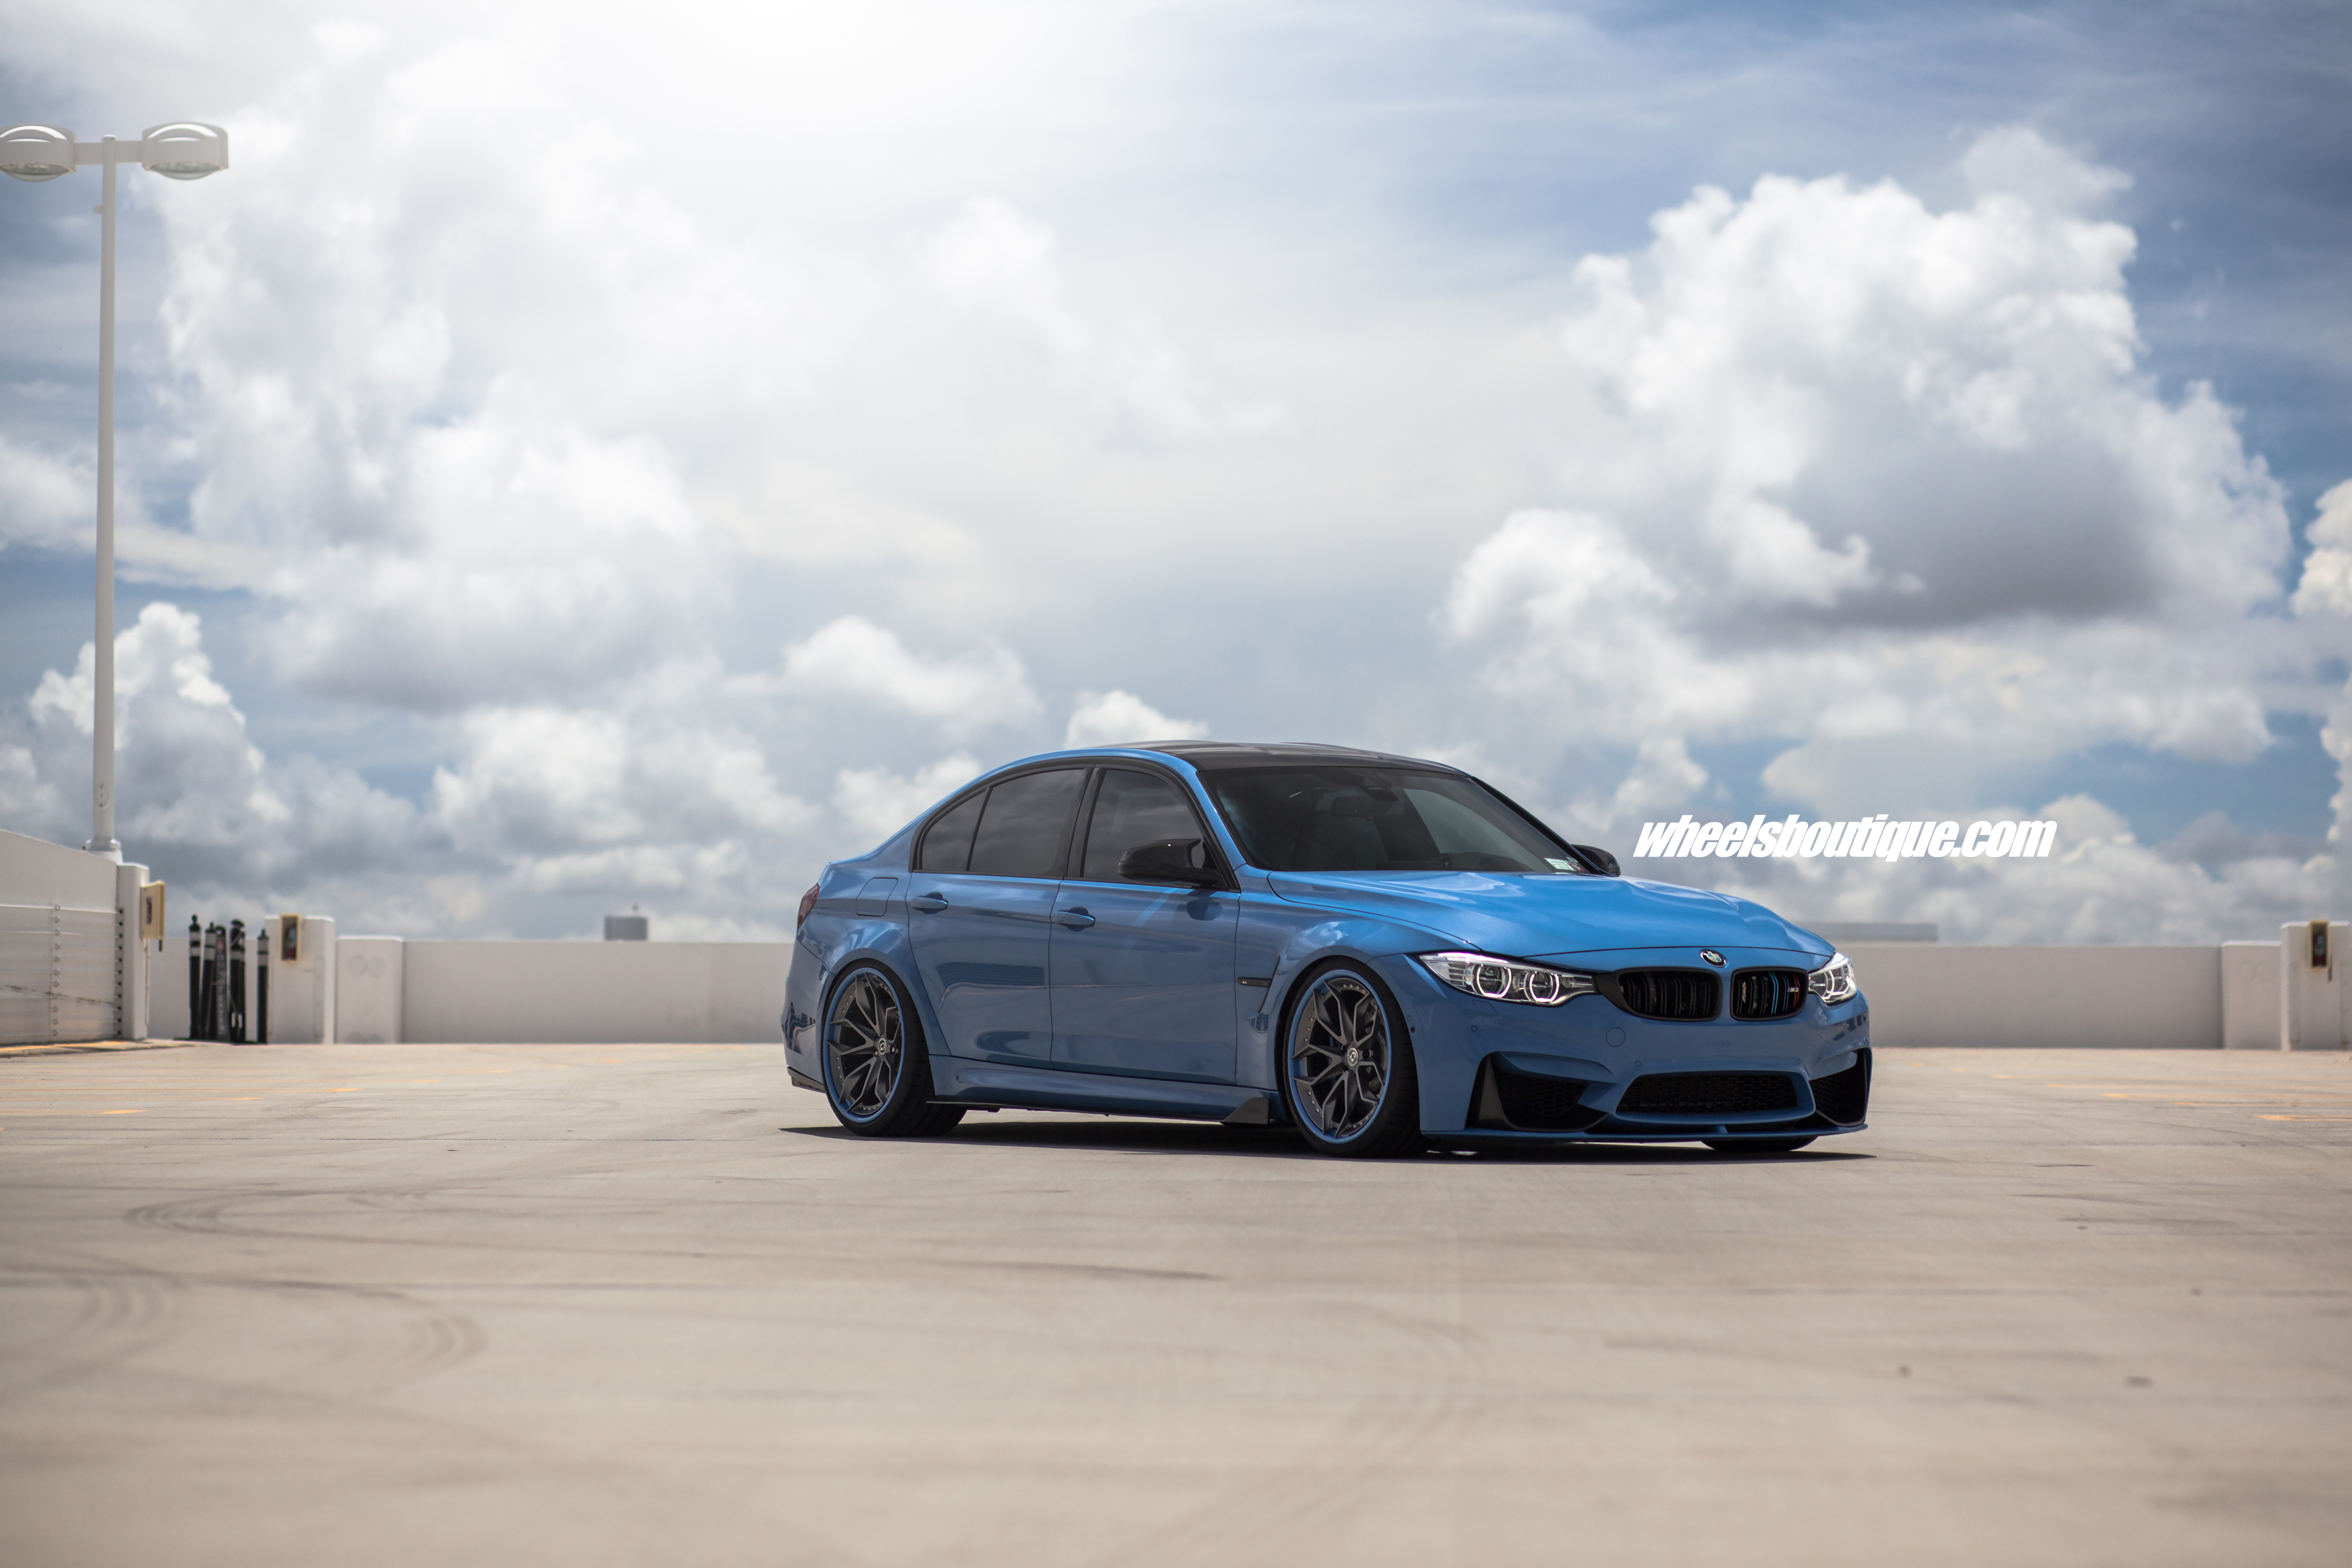 bmw m3 f80 on hre s201 28330959775 o